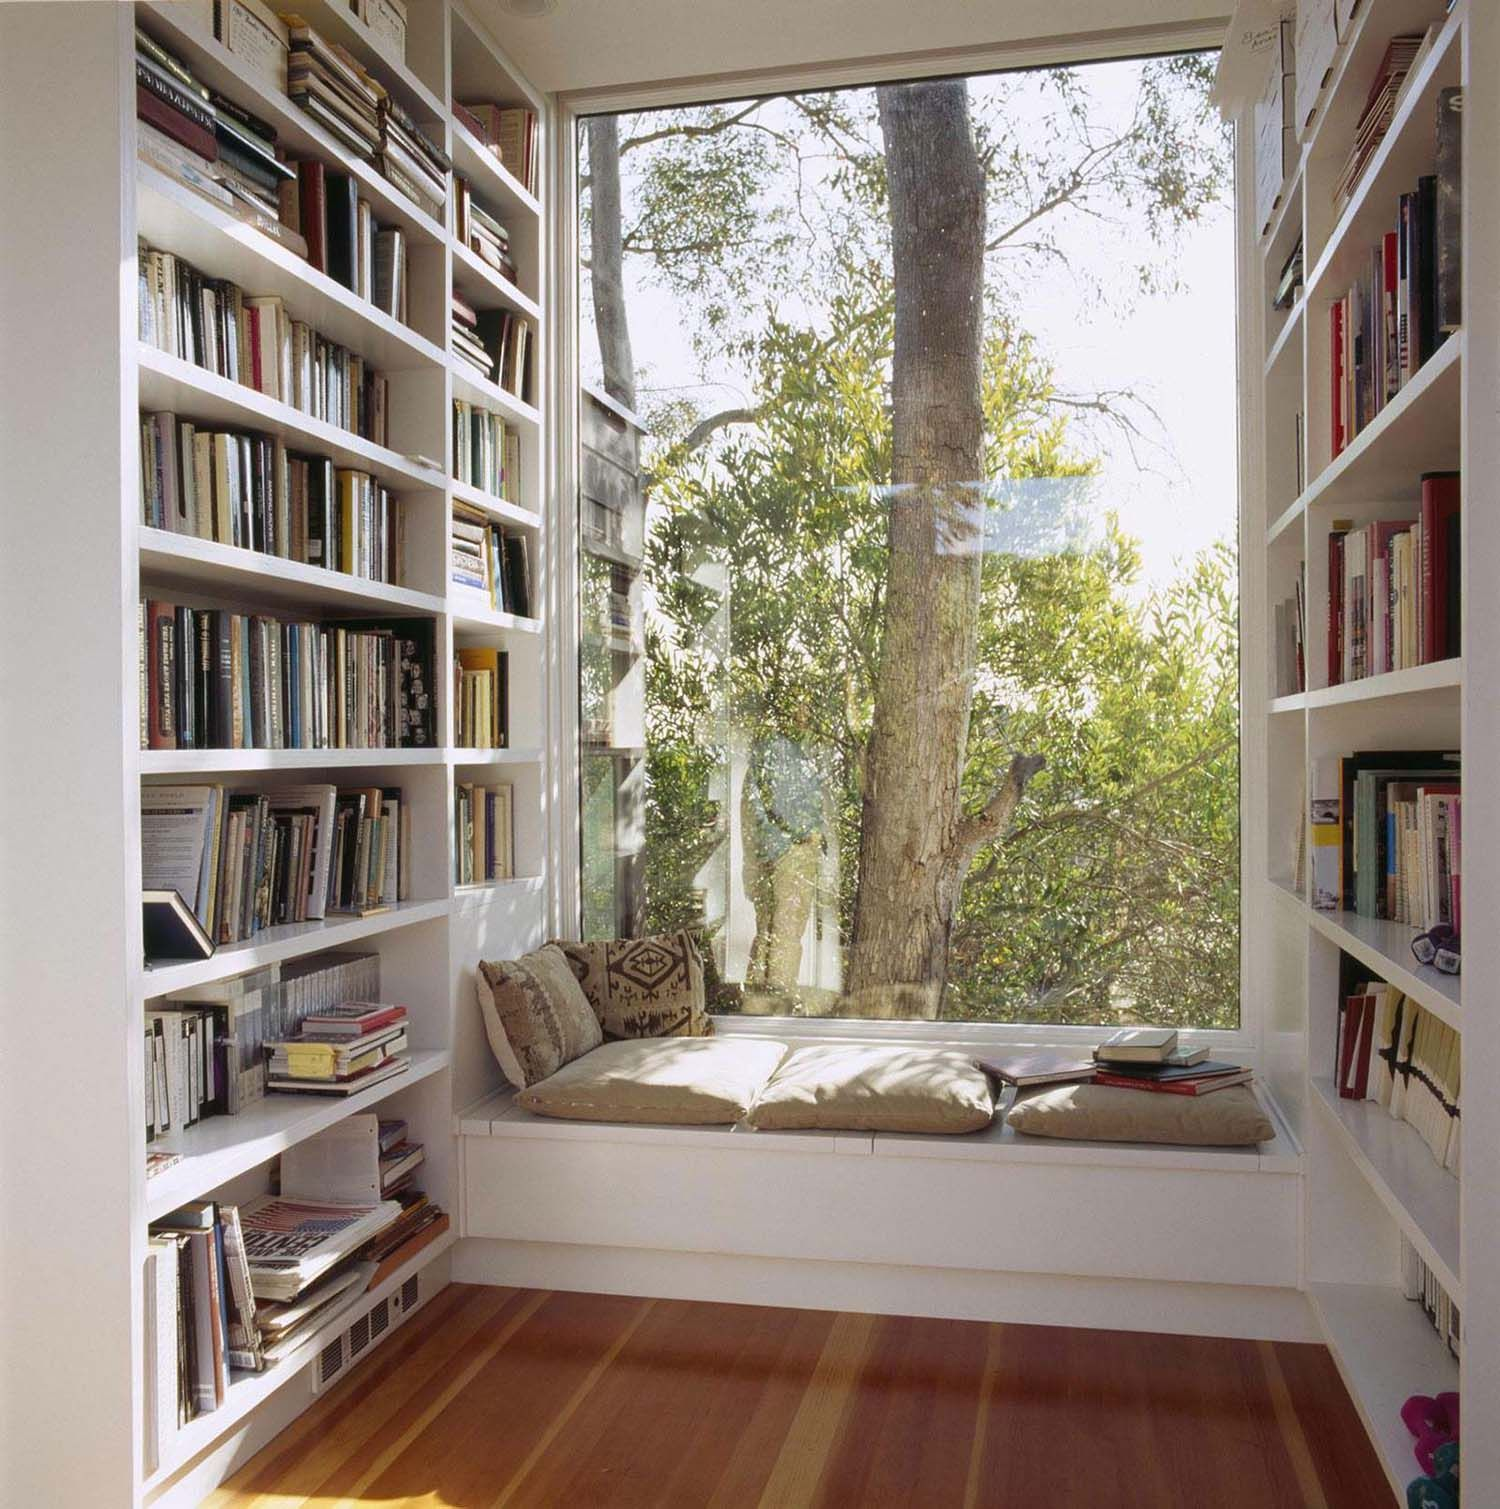 36 Fabulous Home Libraries Showcasing Window Seats 이미지 포함